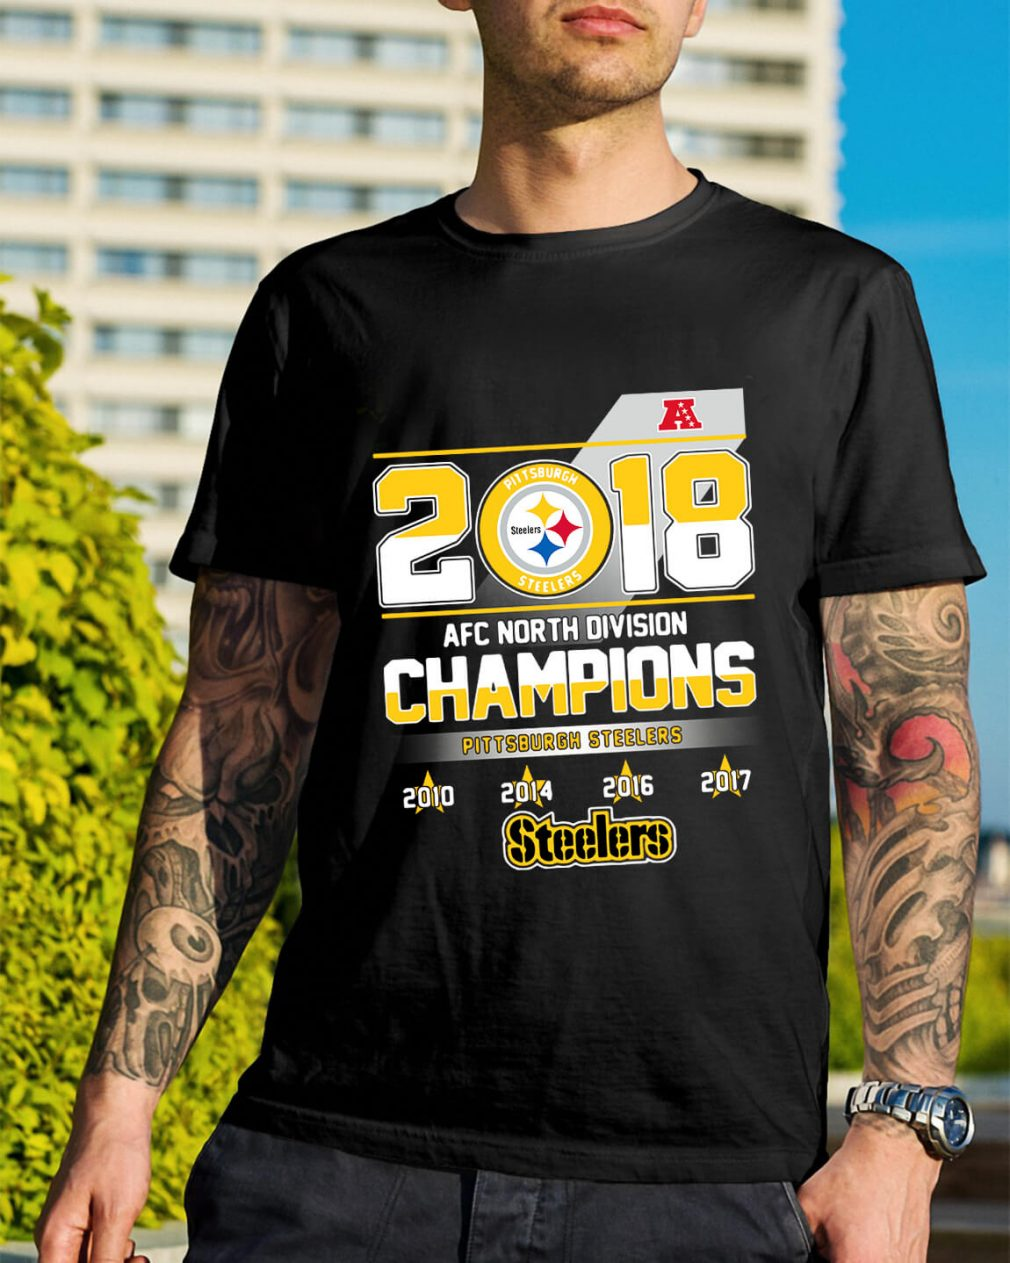 AFC North Division Champions Pittsburgh Steelers shirt